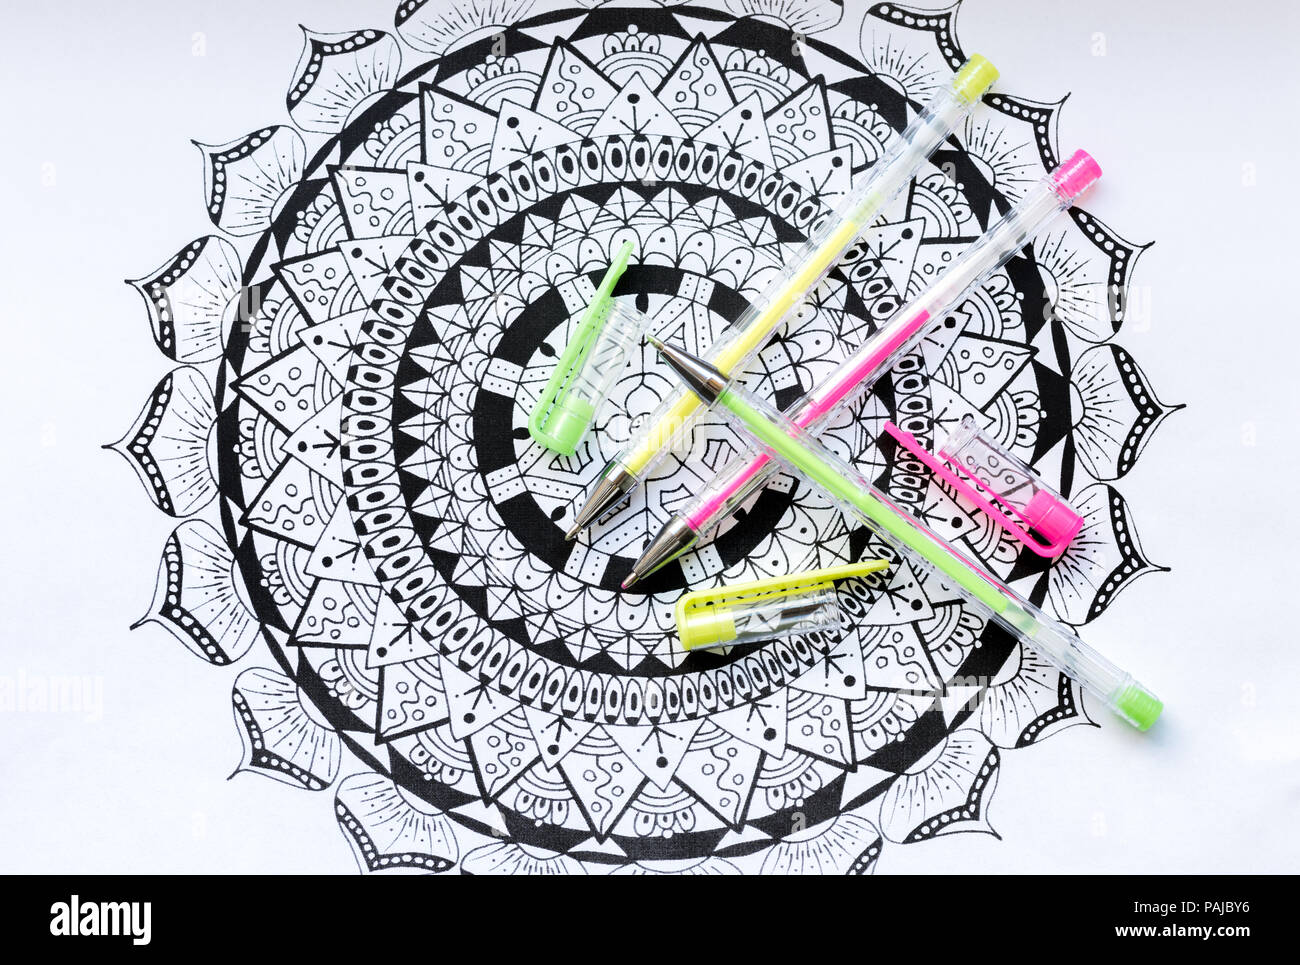 Adult Coloring Book New Stress Relieving Trend Art Therapy Mental Health Creativity